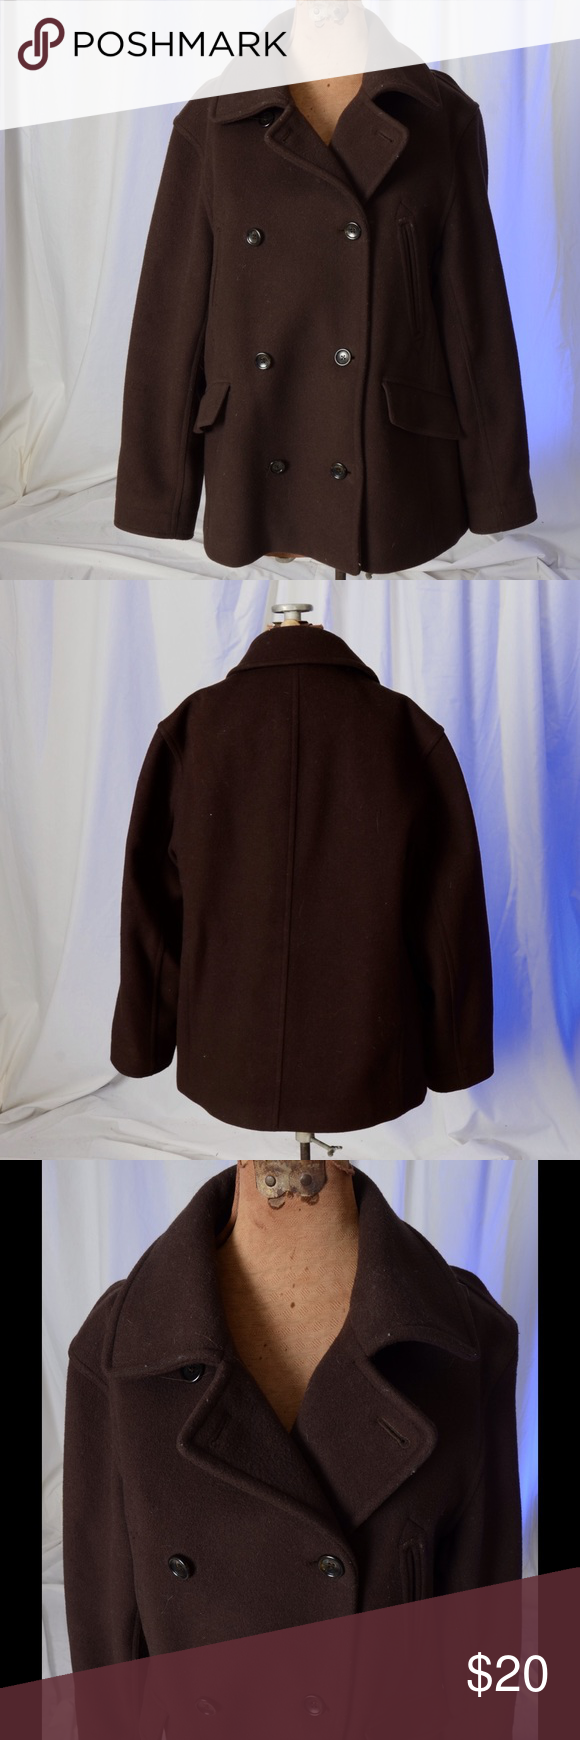 Brown double breasted coat Brown double breasted wool coat.  Coat has four pockets in the front..  Coat is in excellent condition. J. Crew Jackets & Coats Pea Coats